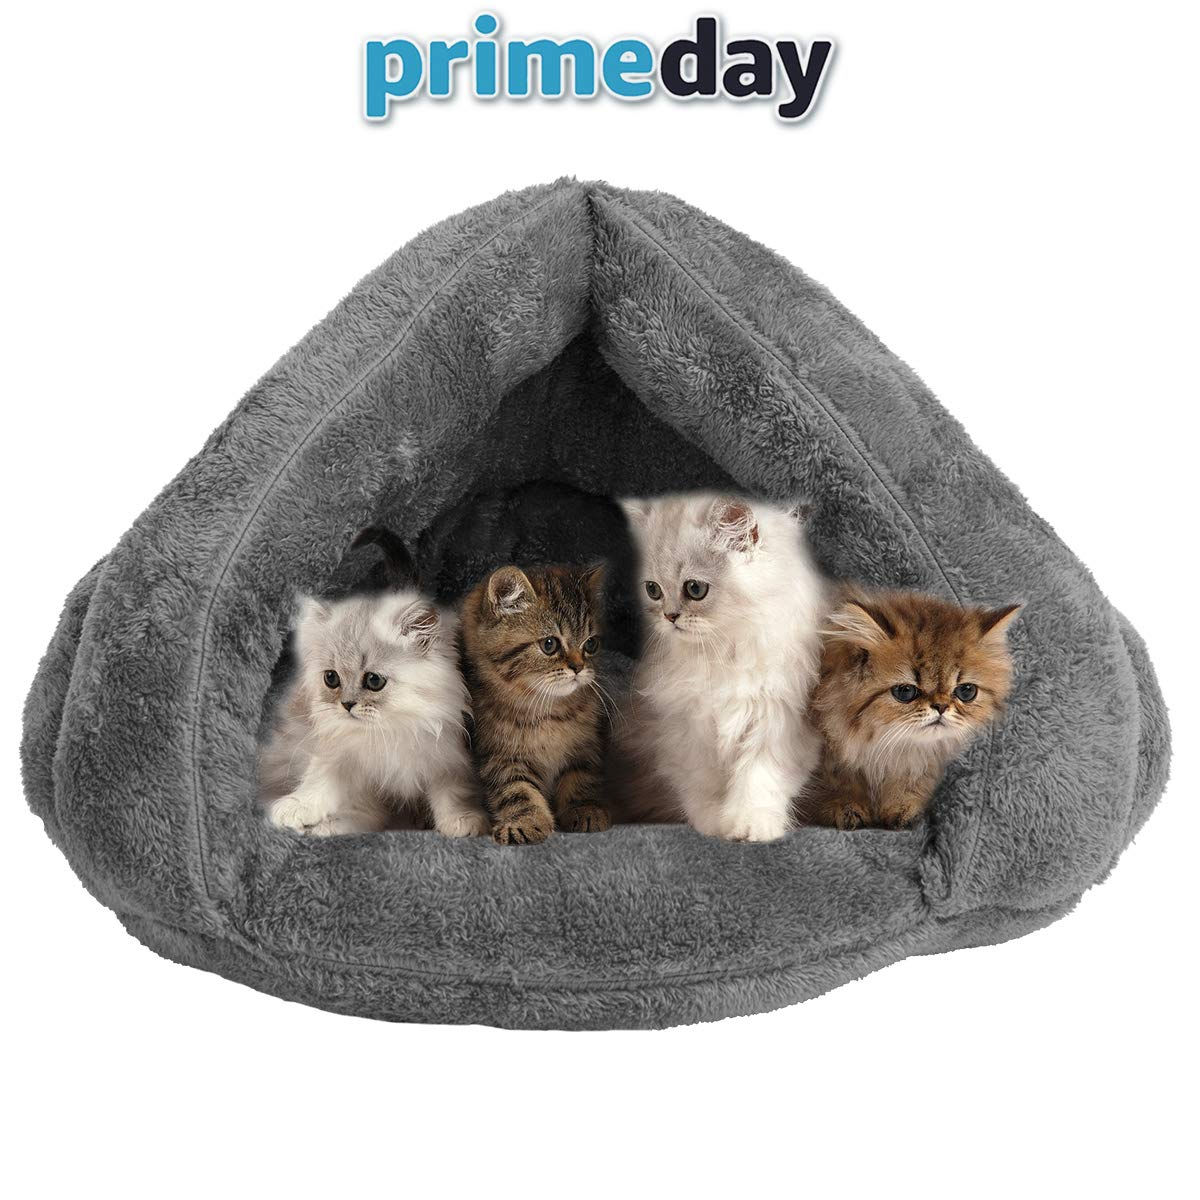 VeMee Plush Cat Sleep Bag Cozy Pet Cave Bed Covered Pet Beds Cave for Cat Small Dogs and Puppies Winter Pets Indoor Triangle Nest by VeMee